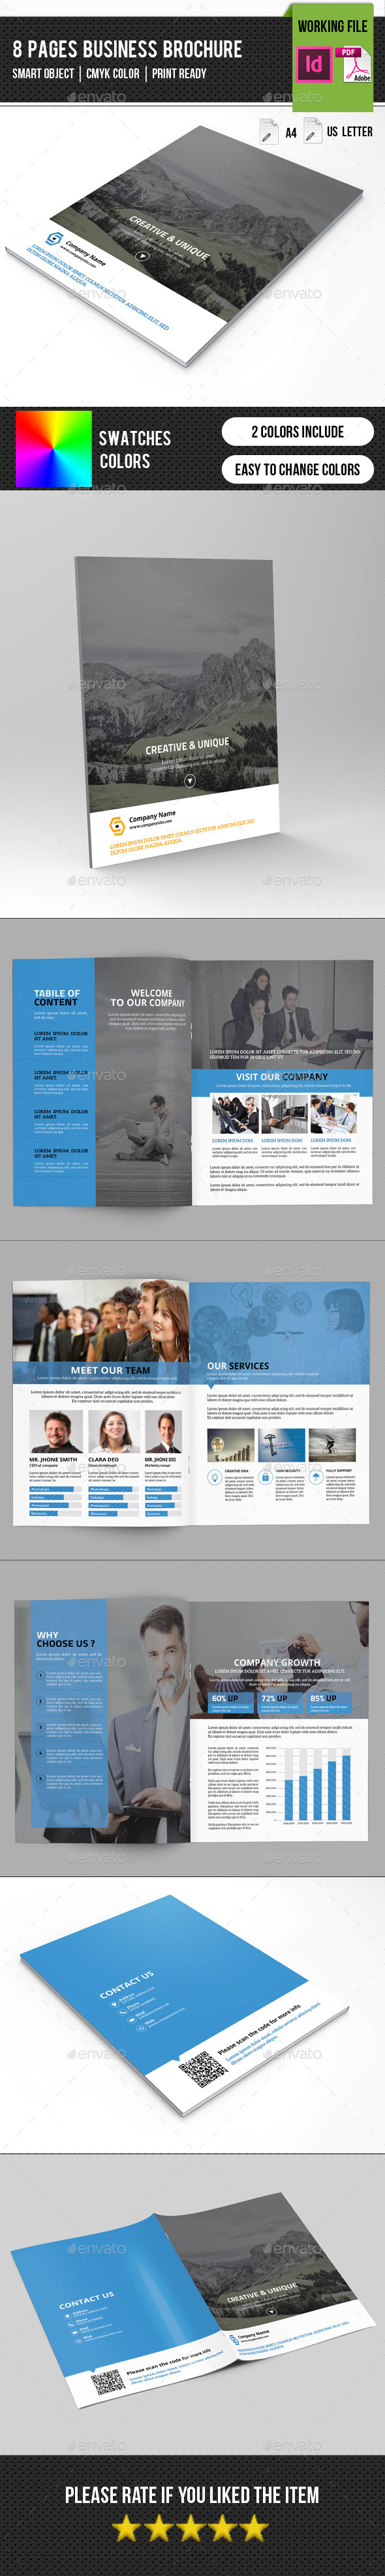 GraphicRiver Corporate Brochure 8 Pages-V259 11787984